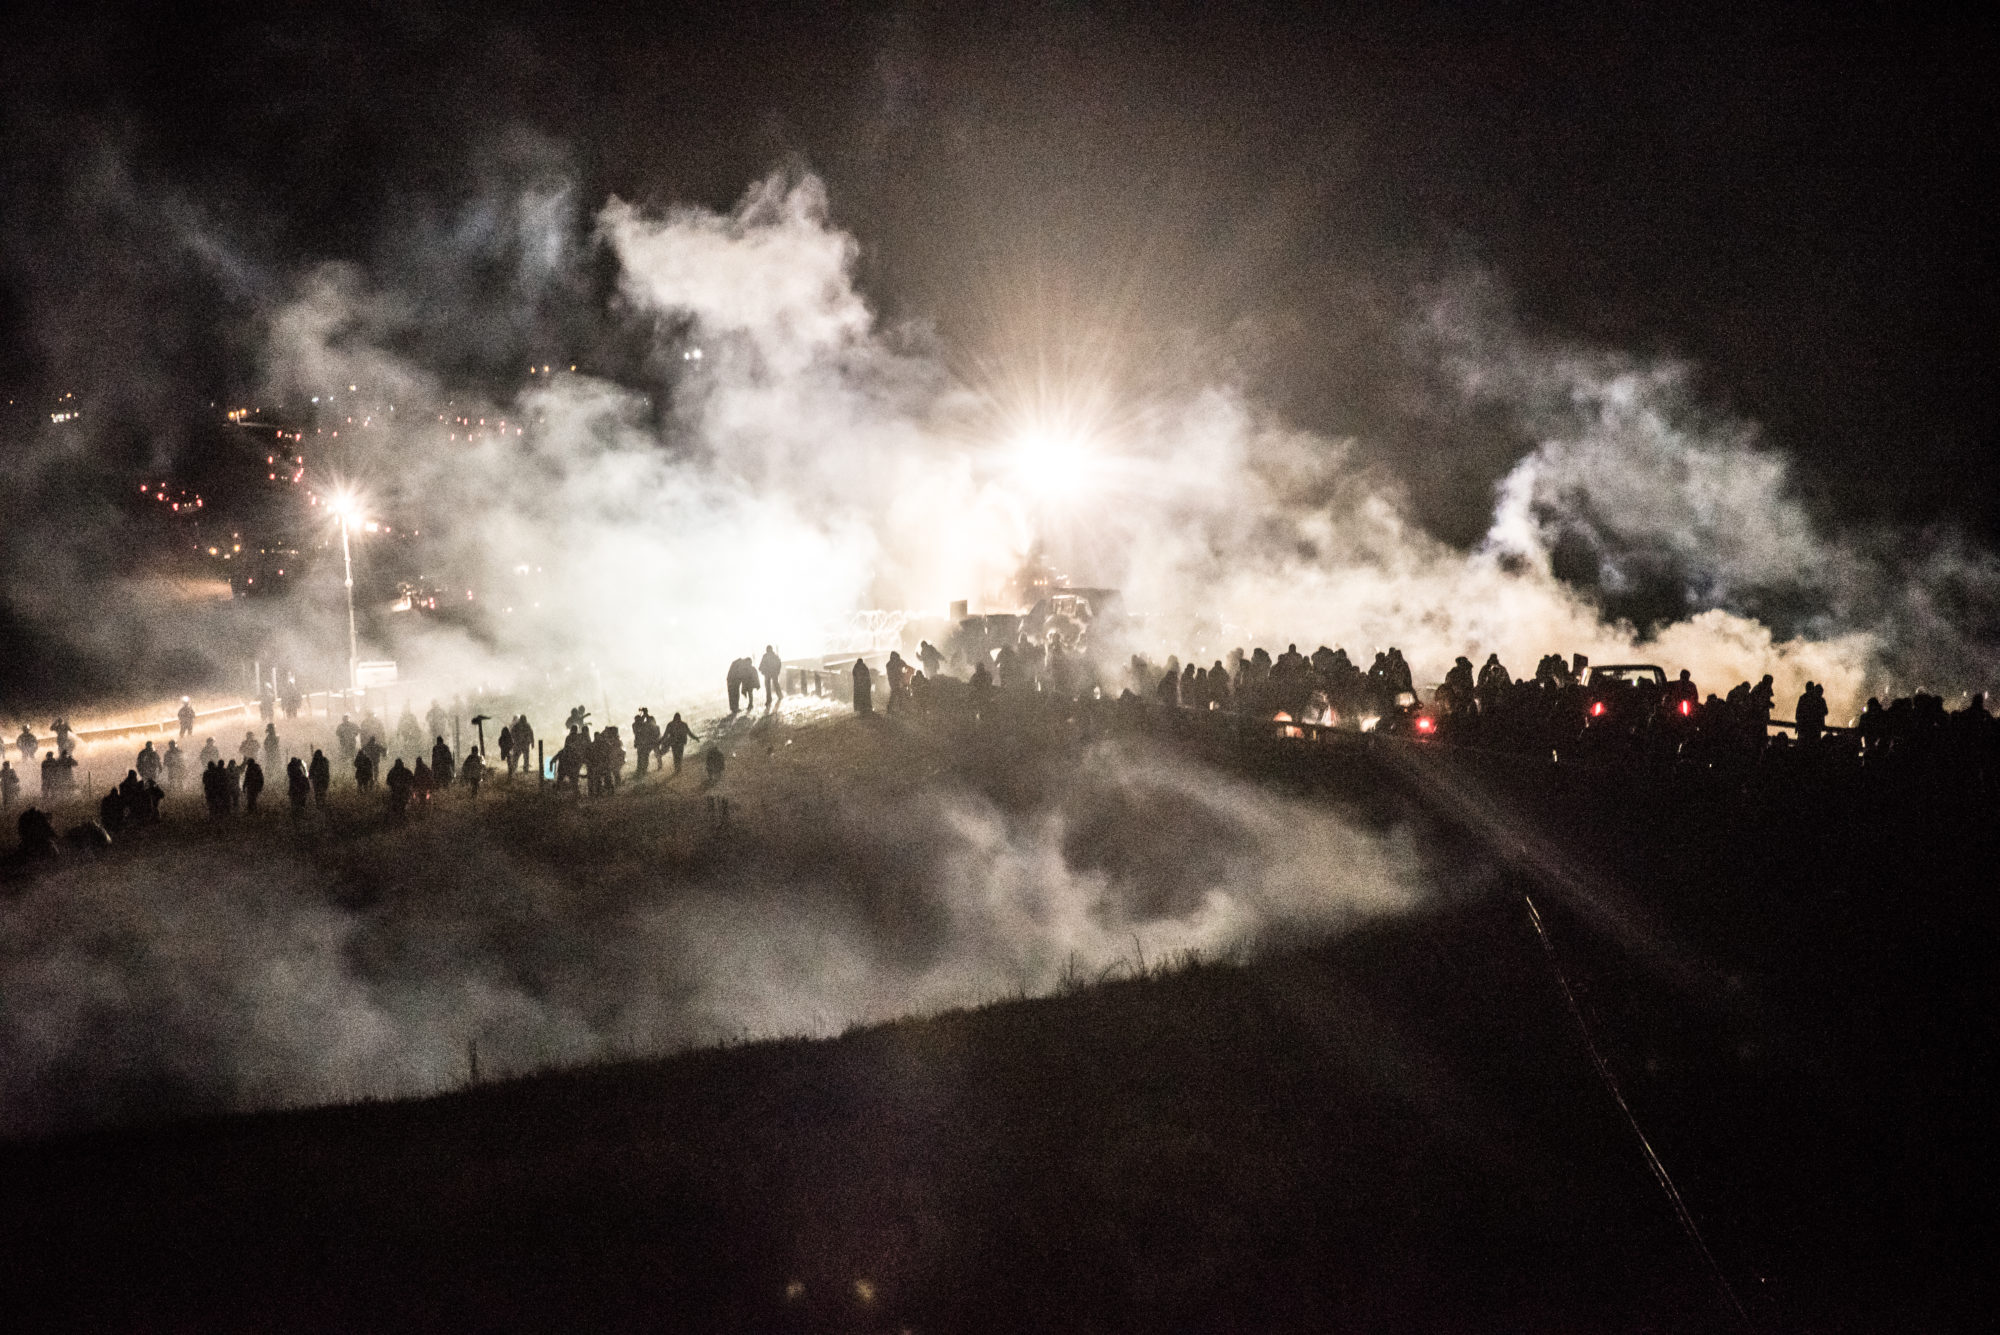 Police attack Water Defenders with tear gas, water cannons, and compression grenades. (Image: Avery White)